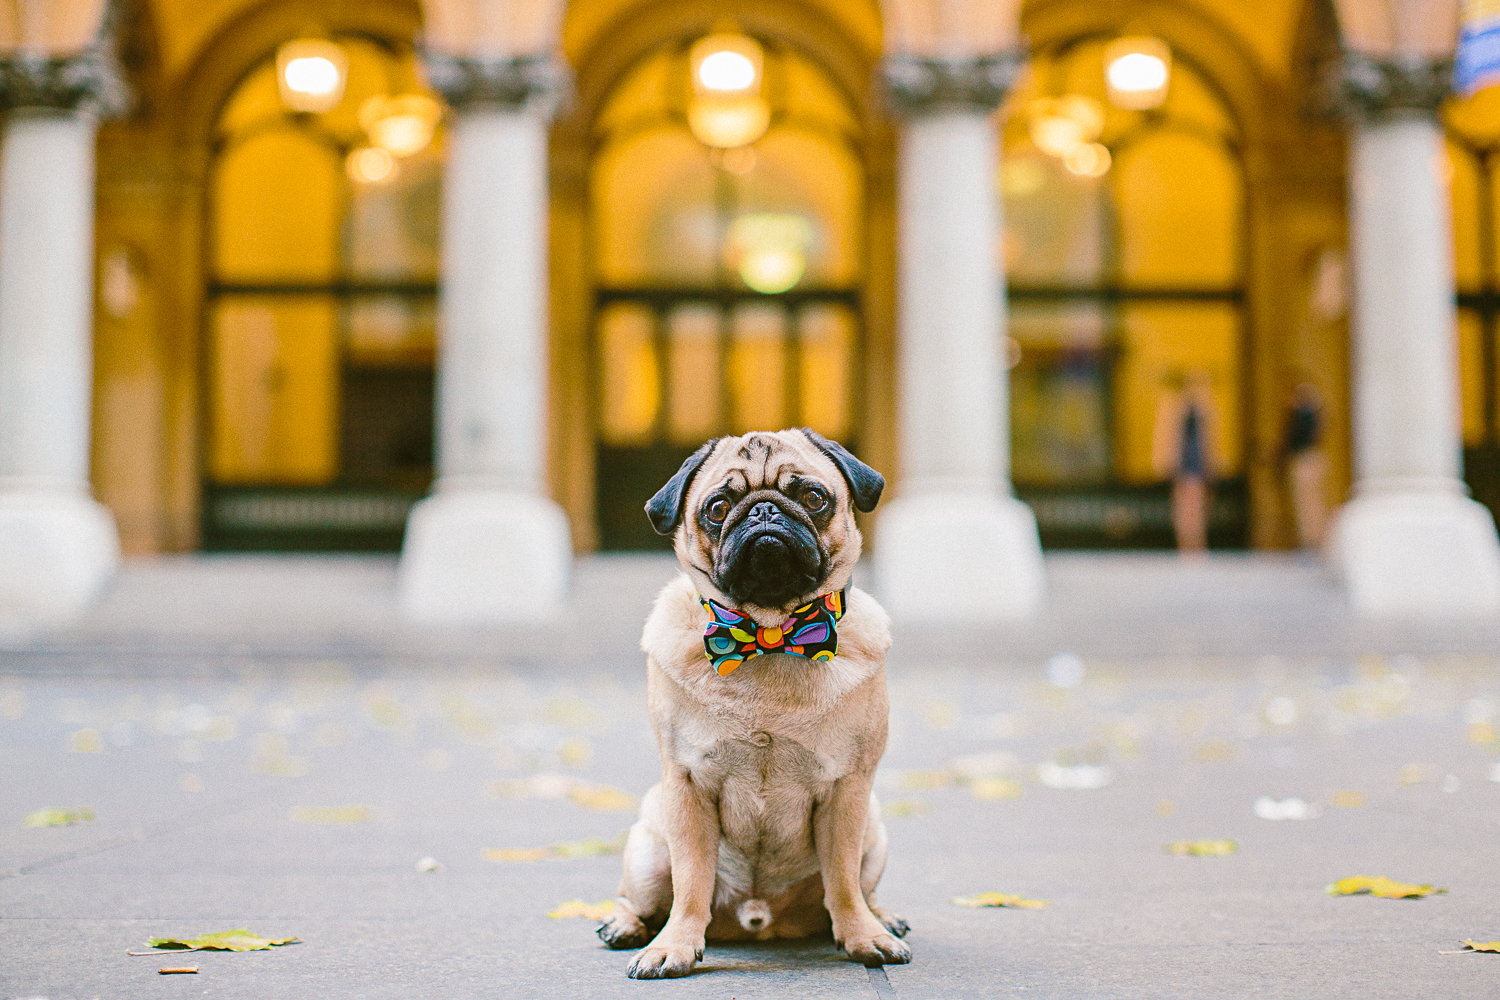 twoguineapigs_pet_photography_oh_jaffa_pug_wearing_bow_tie_collars_circle_design